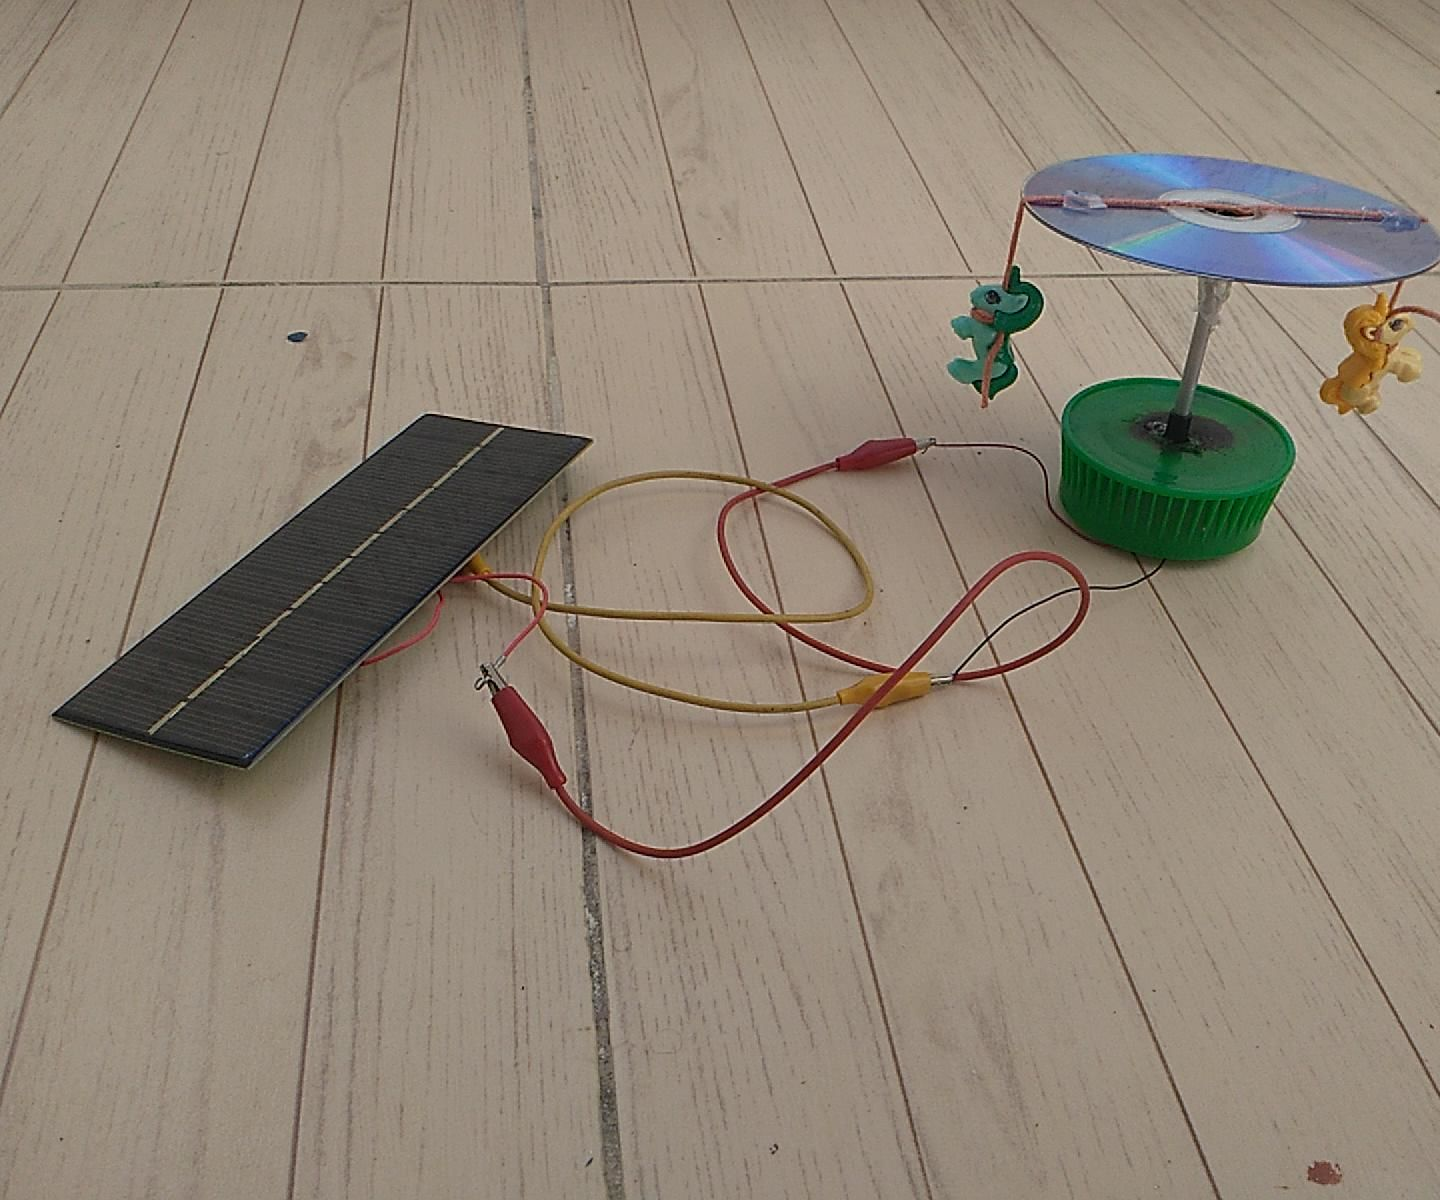 How I Made a Simple Solar Carousel for My Kids - Solar Merry Go Round Toy